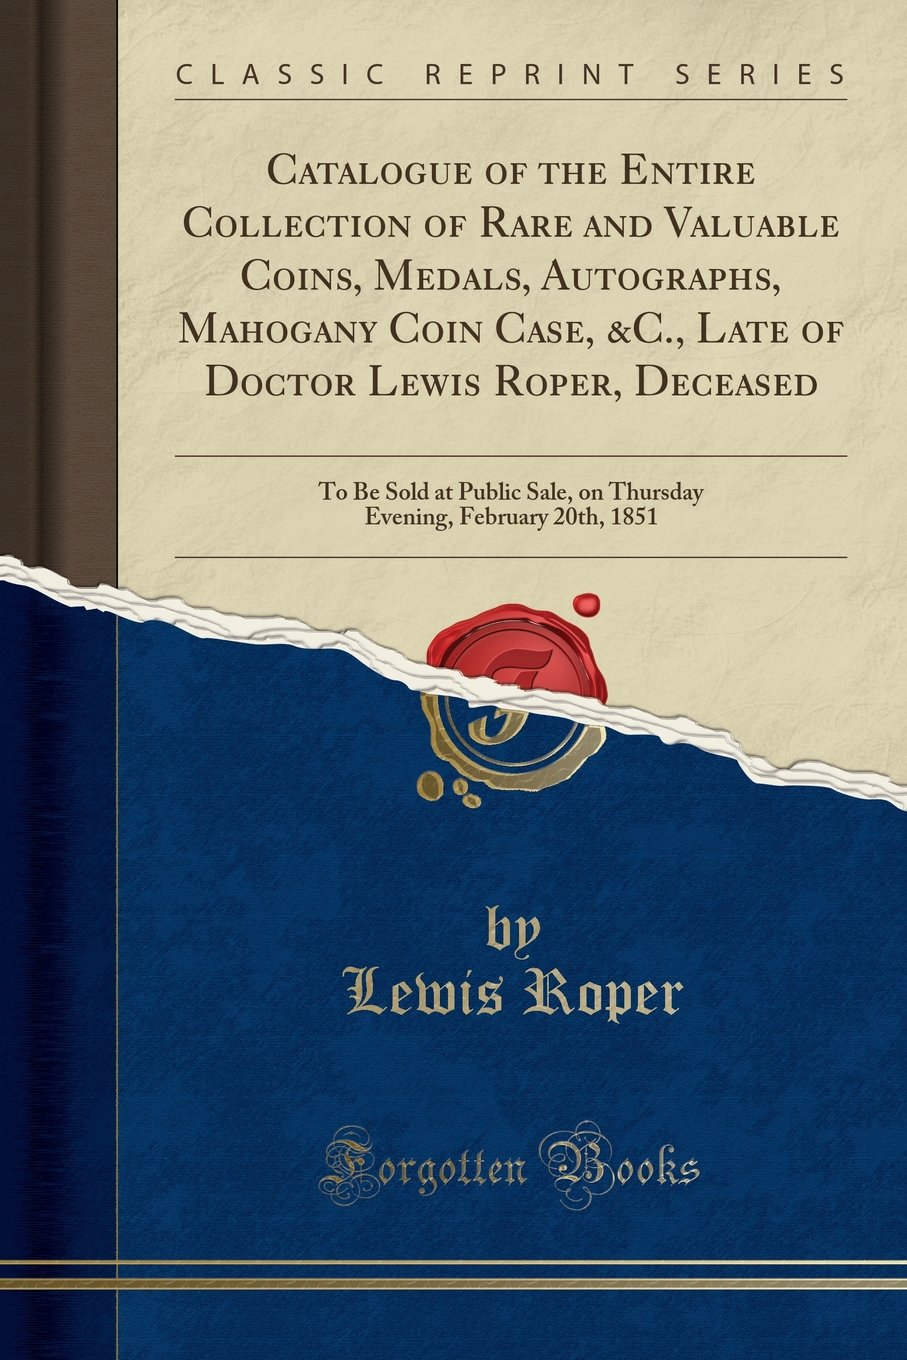 Read Online Catalogue of the Entire Collection of Rare and Valuable Coins, Medals, Autographs, Mahogany Coin Case, &C., Late of Doctor Lewis Roper, Deceased: To ... February 20th, 1851 (Classic Reprint) PDF